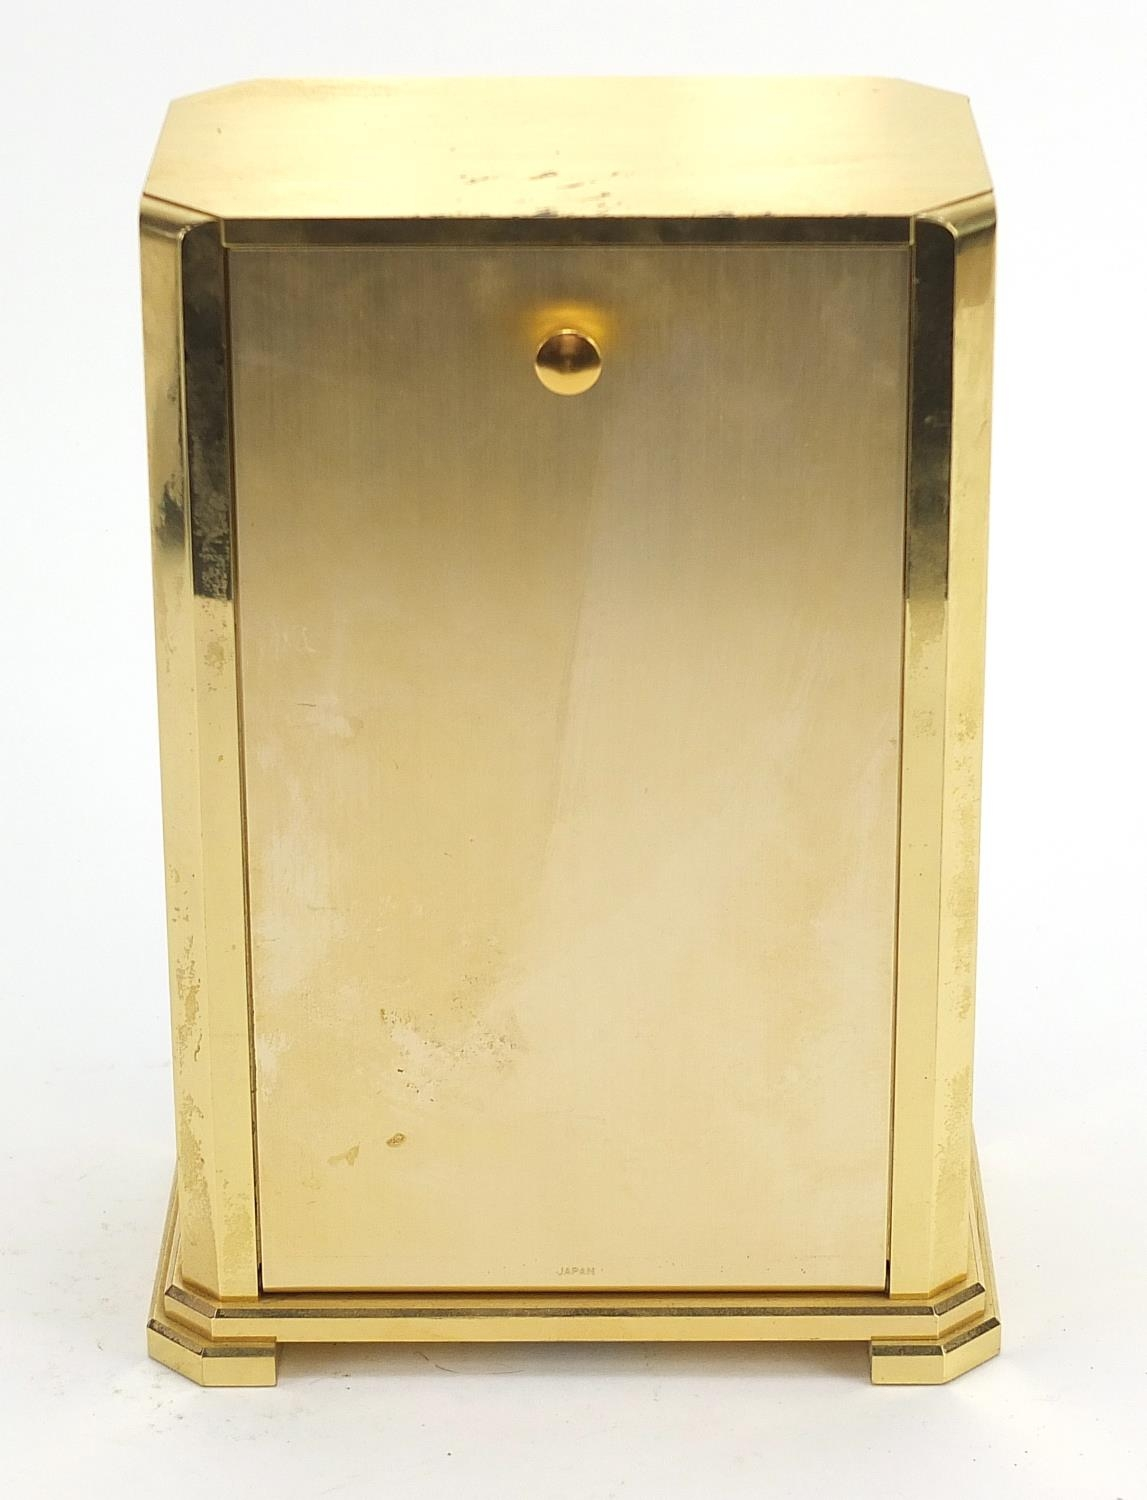 Seiko Westminster-Whittington mantle clock with Roman numerals, 20cm high : For Further Condition - Image 3 of 4